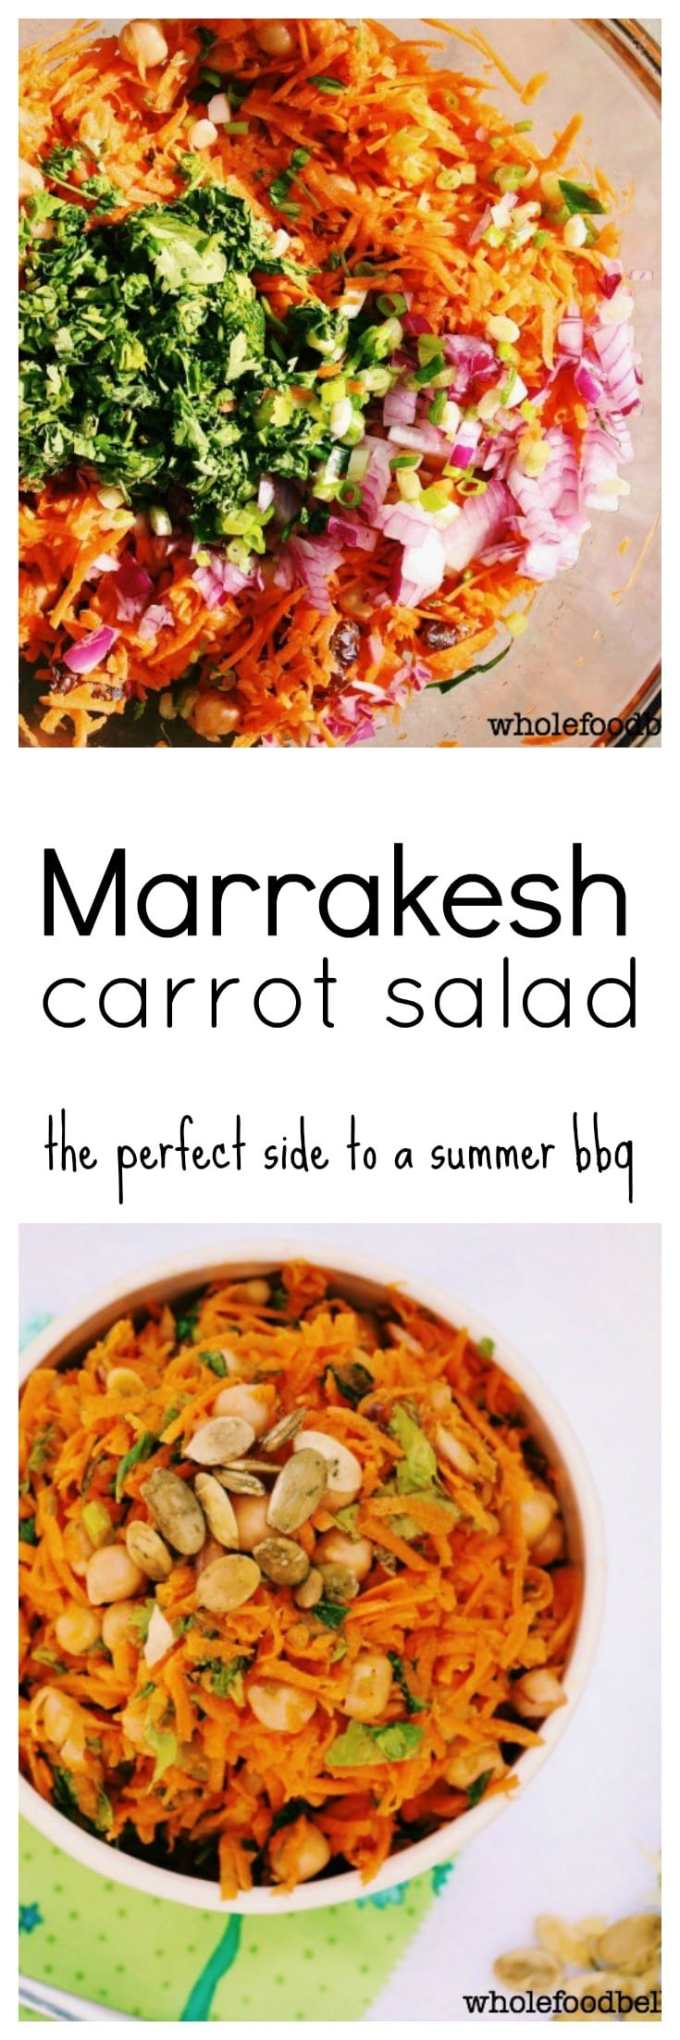 This Marrakesh Carrot Salad is a perfect quick and easy salad to bring along to your next summer potluck. Light, fresh and delicious.